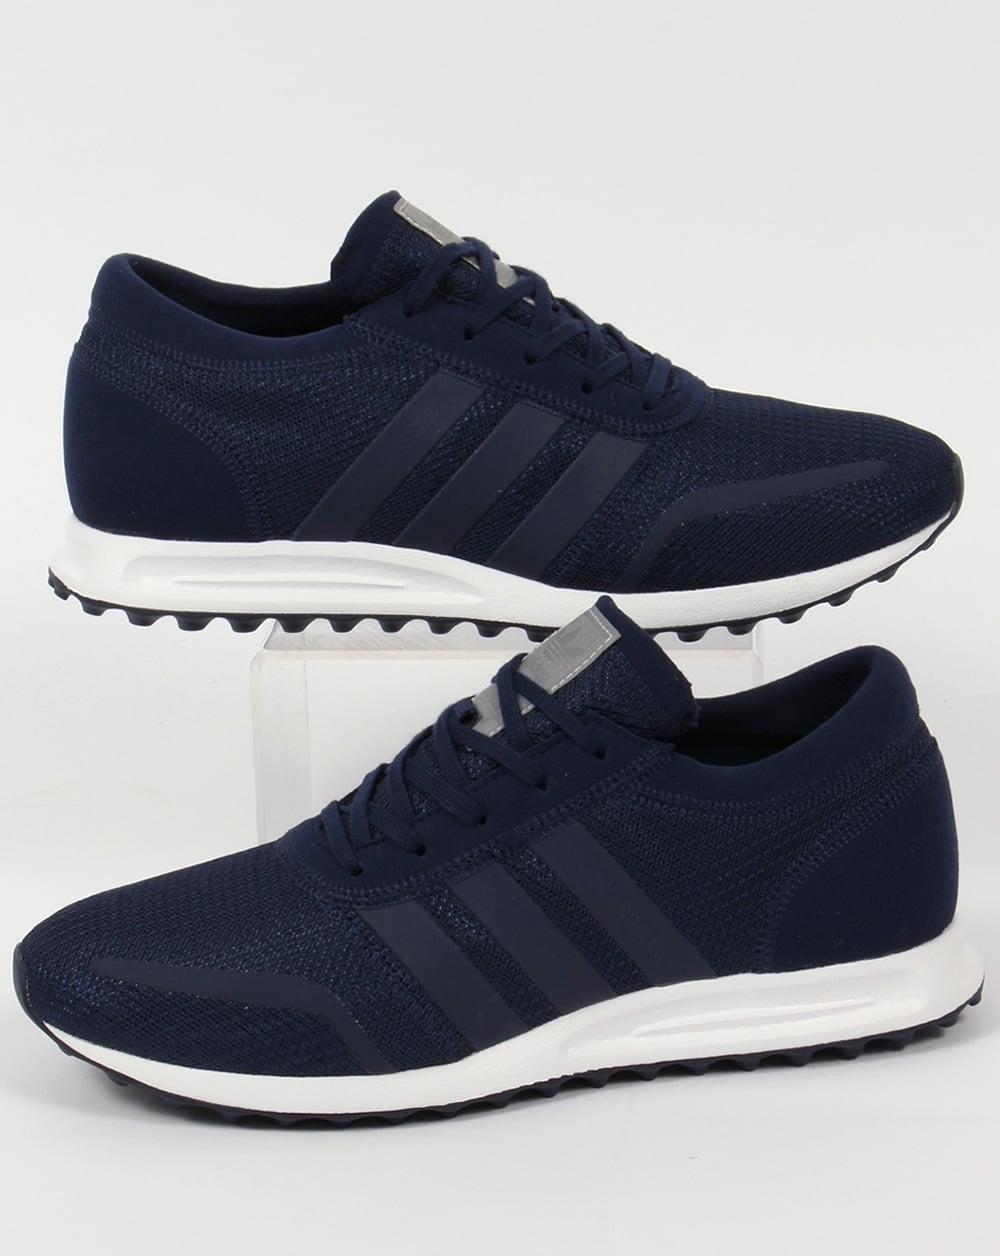 adidas navy trainers Online Shopping